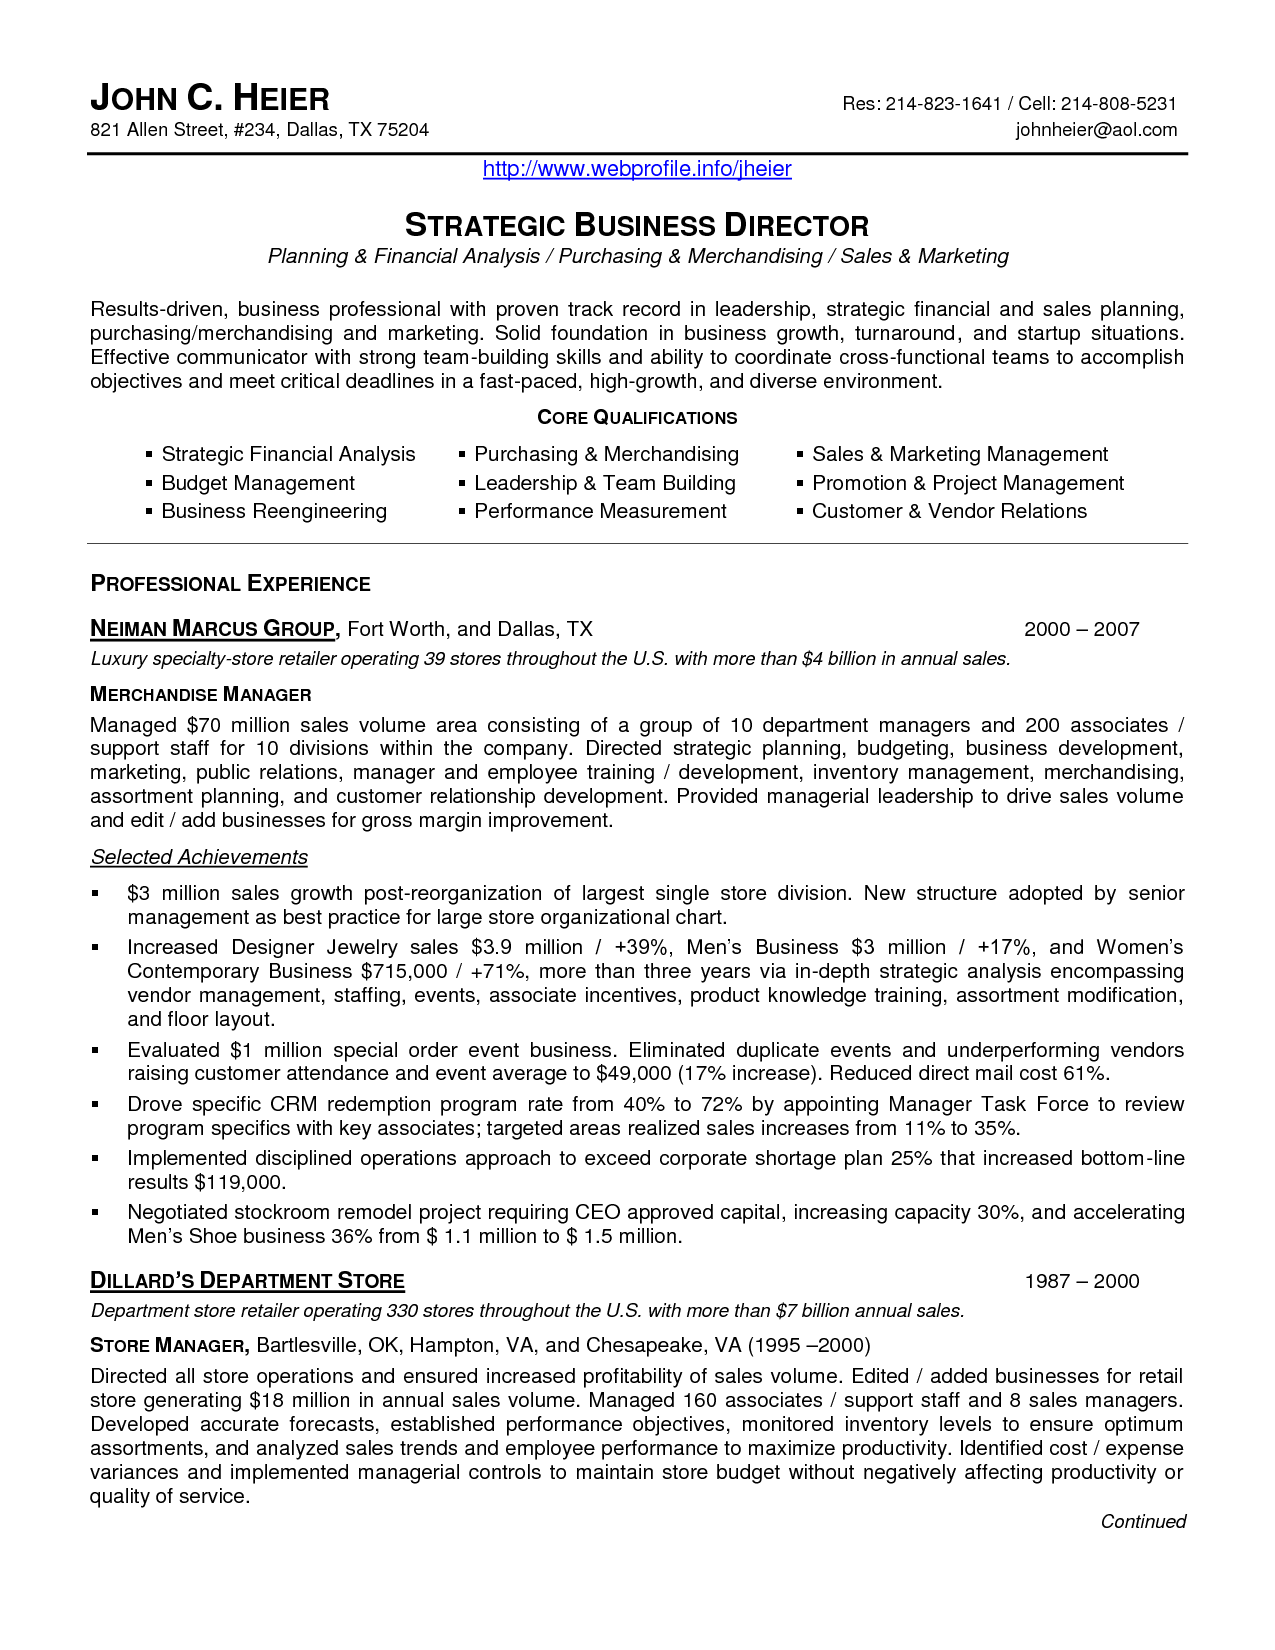 Regional Sales Manager Resume Awesome Regional Sales Manager Resume ...